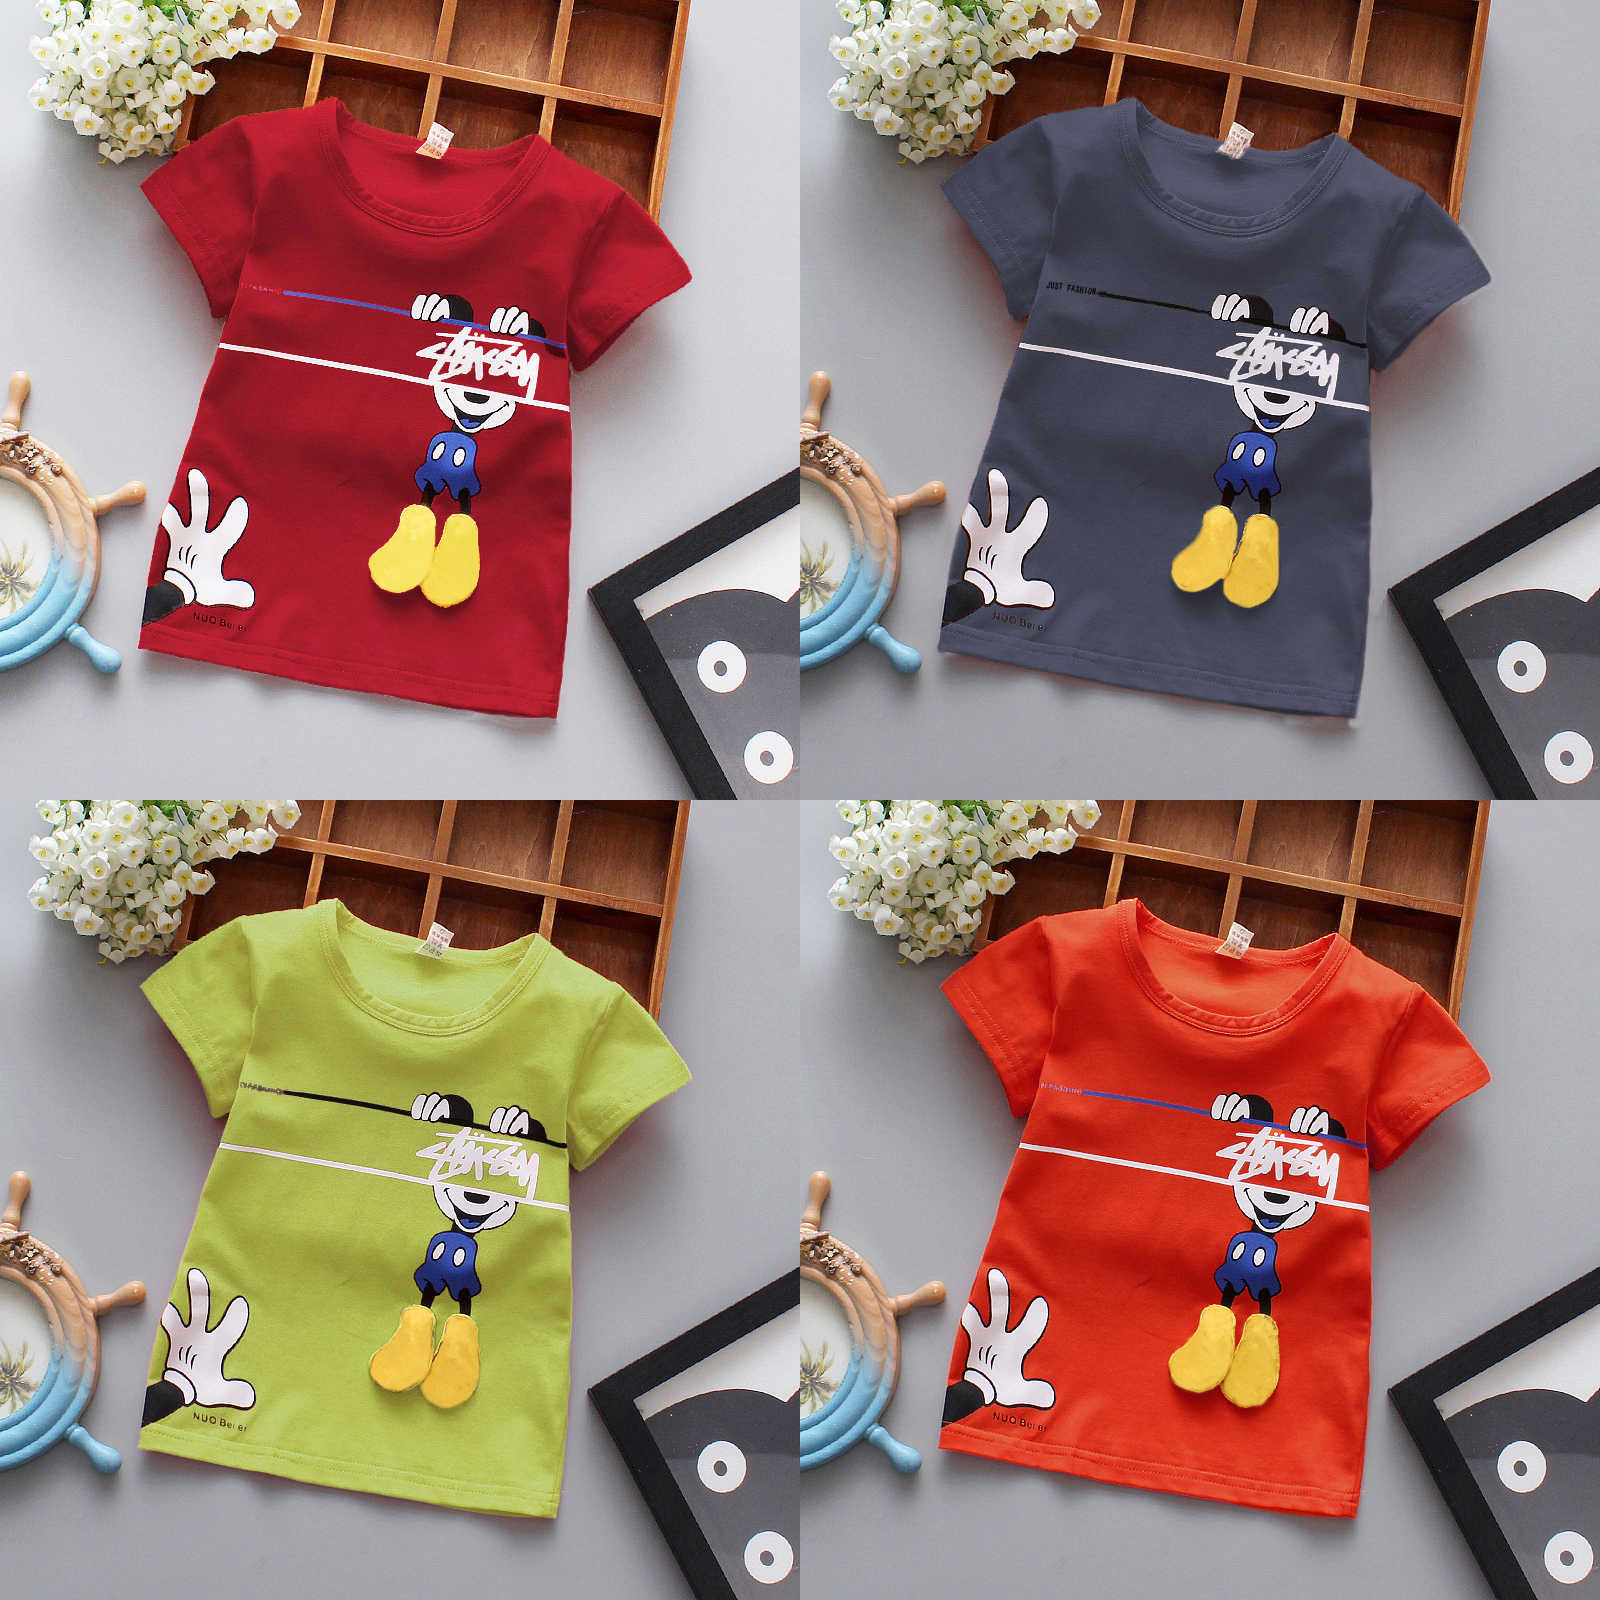 Baby Toddler Children Infant Boy Girl Kids Short-sleeved T-shirt colorful Shirts Cartoon Clothes Tshirt Tops Tees